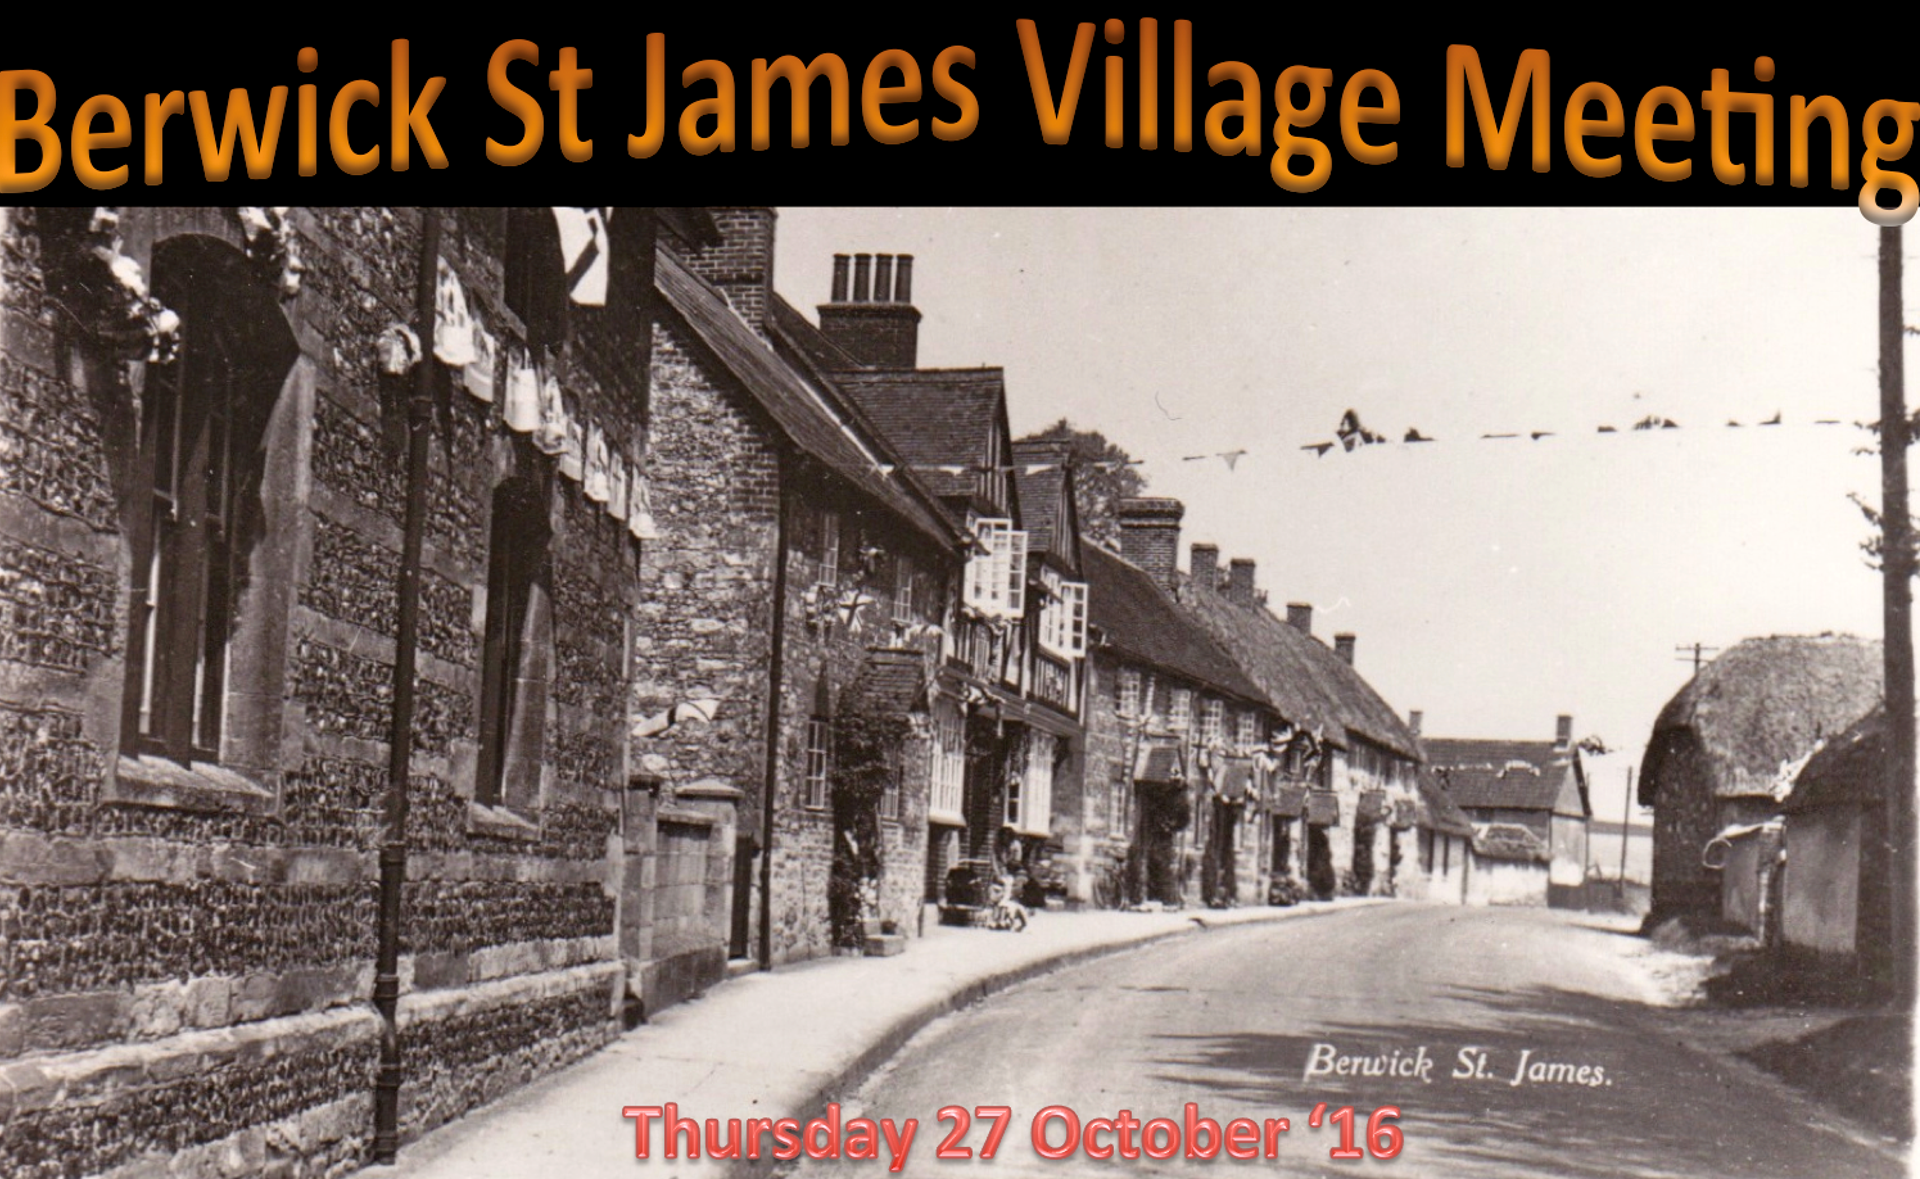 Berwick St James Parish Community Village Meeting - 27 October '16